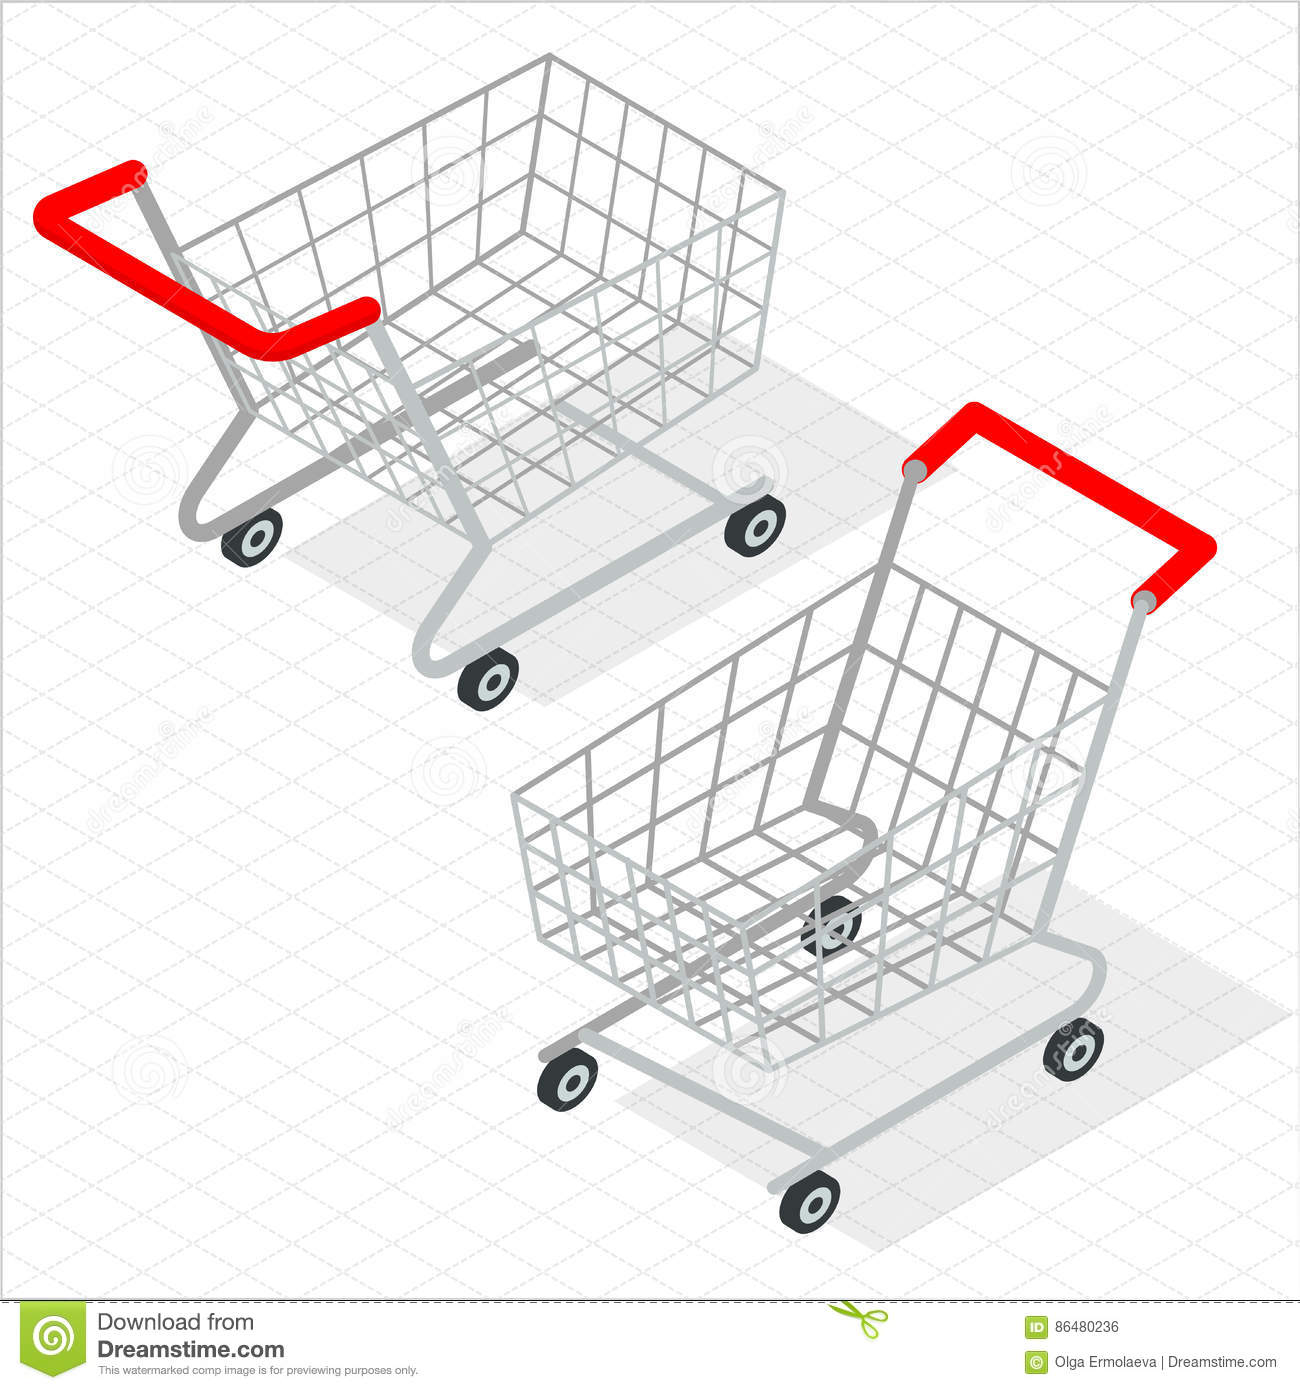 Online shopping cart template free download